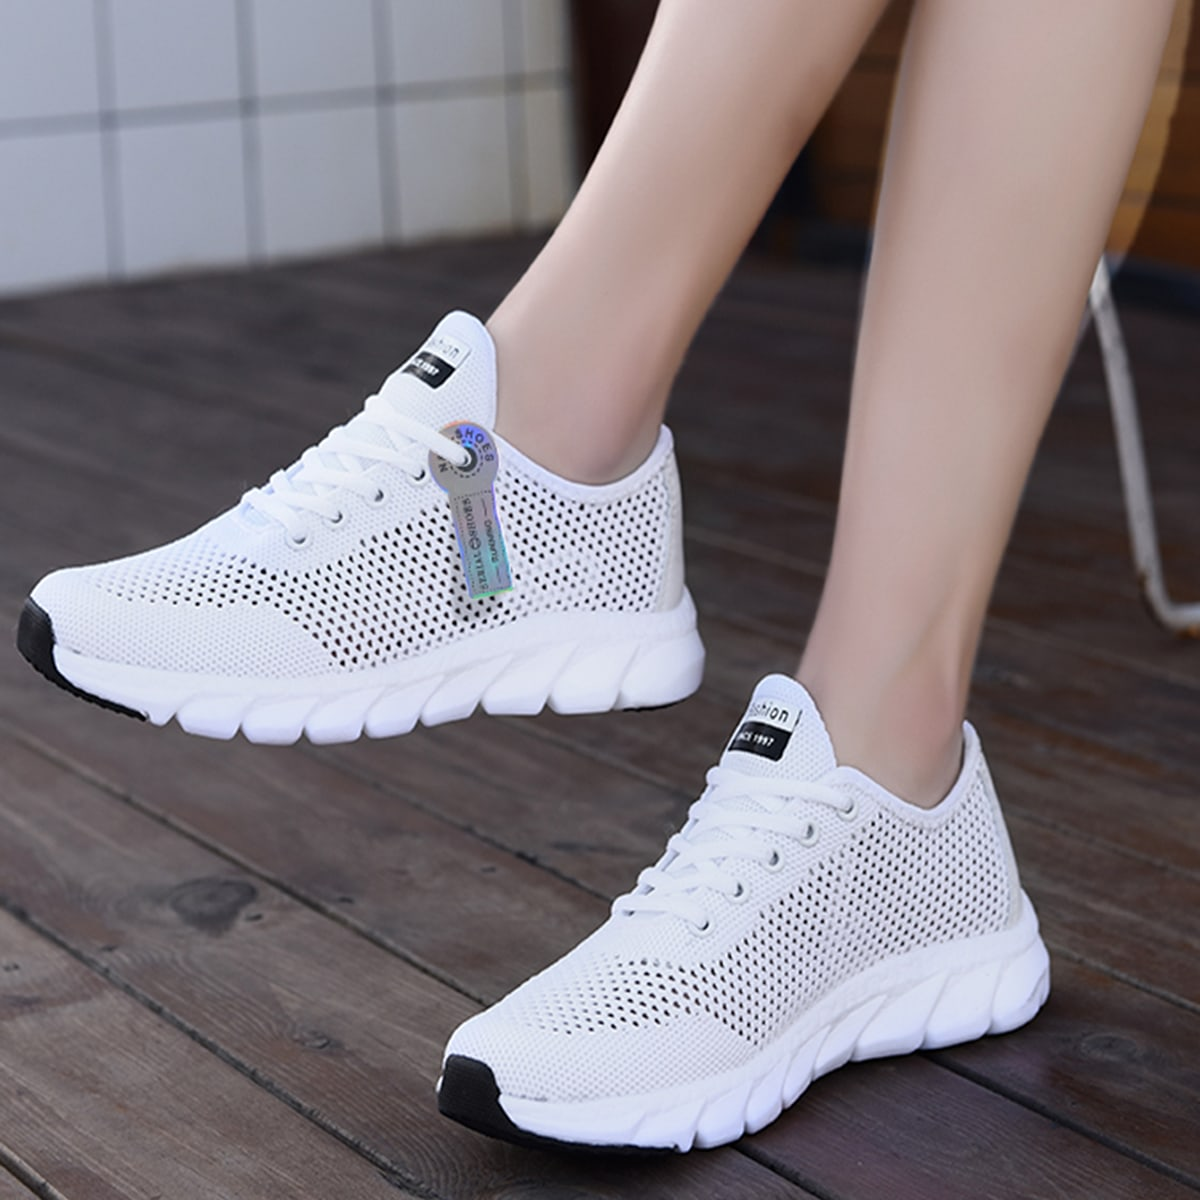 Minimalist Hollow Out Design Sneakers